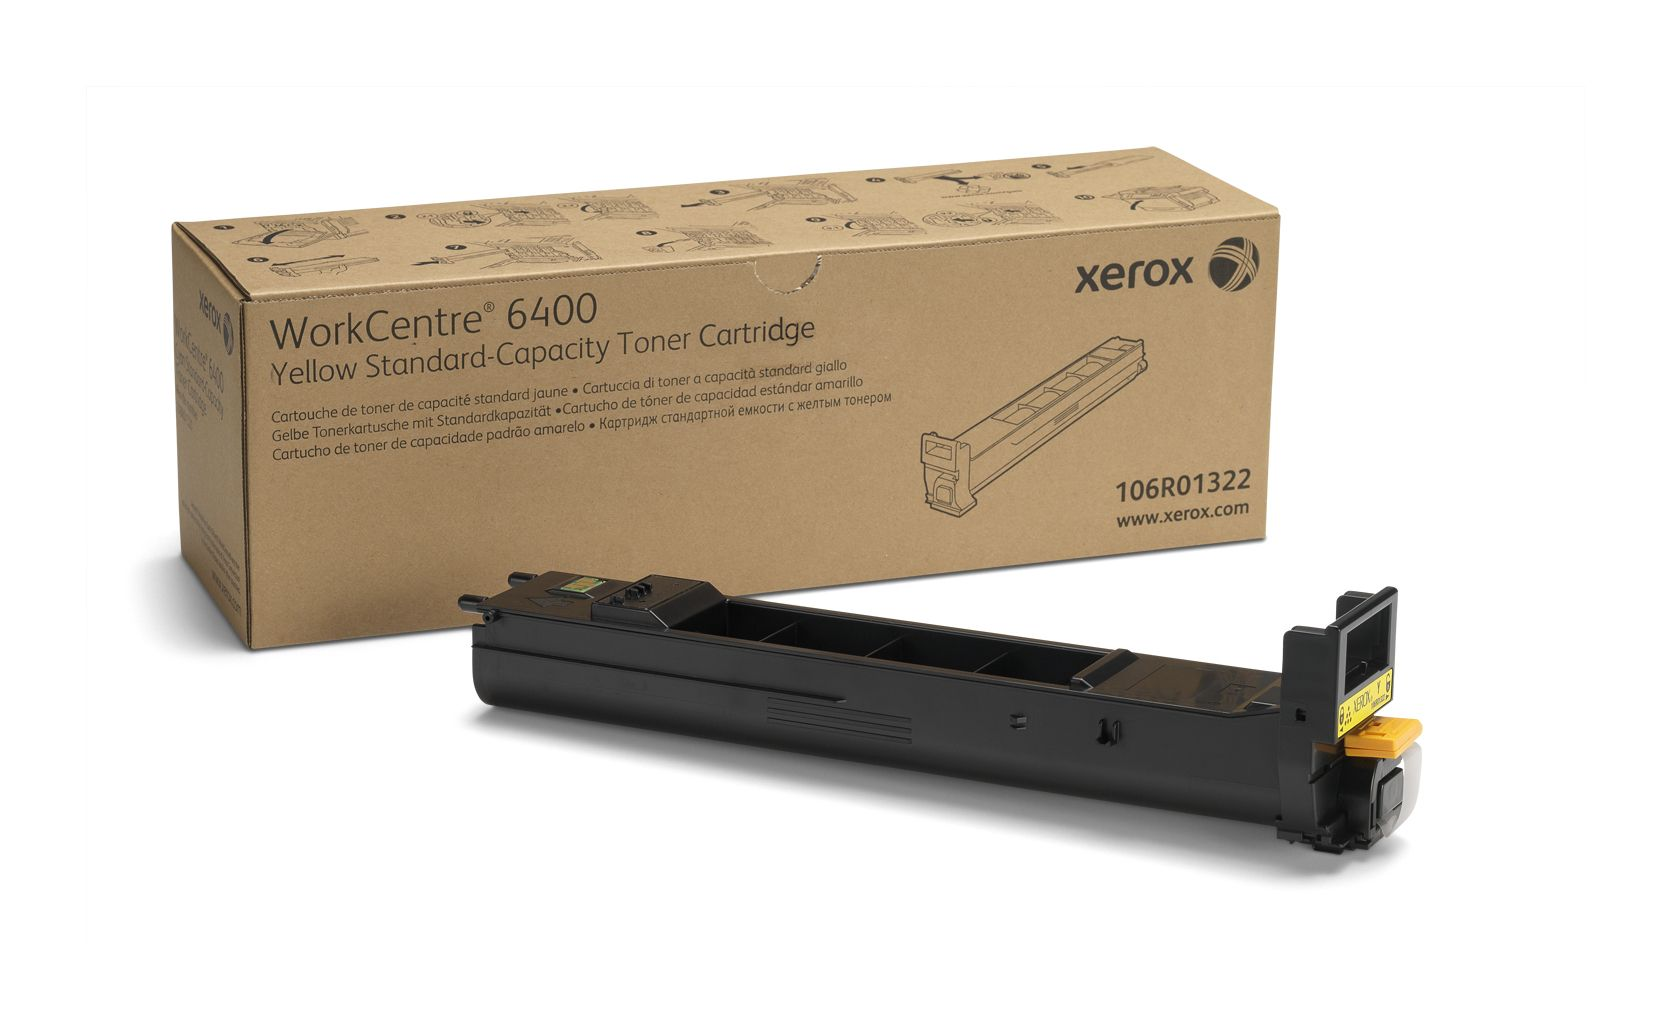 XEROX WorkCentre 6400 - Gul - original - tonerpatron - for WorkCentre 6400, 6400/XFM, 6400S, 6400SFS, 6400X, 6400XF, 6400XM (106R01322)